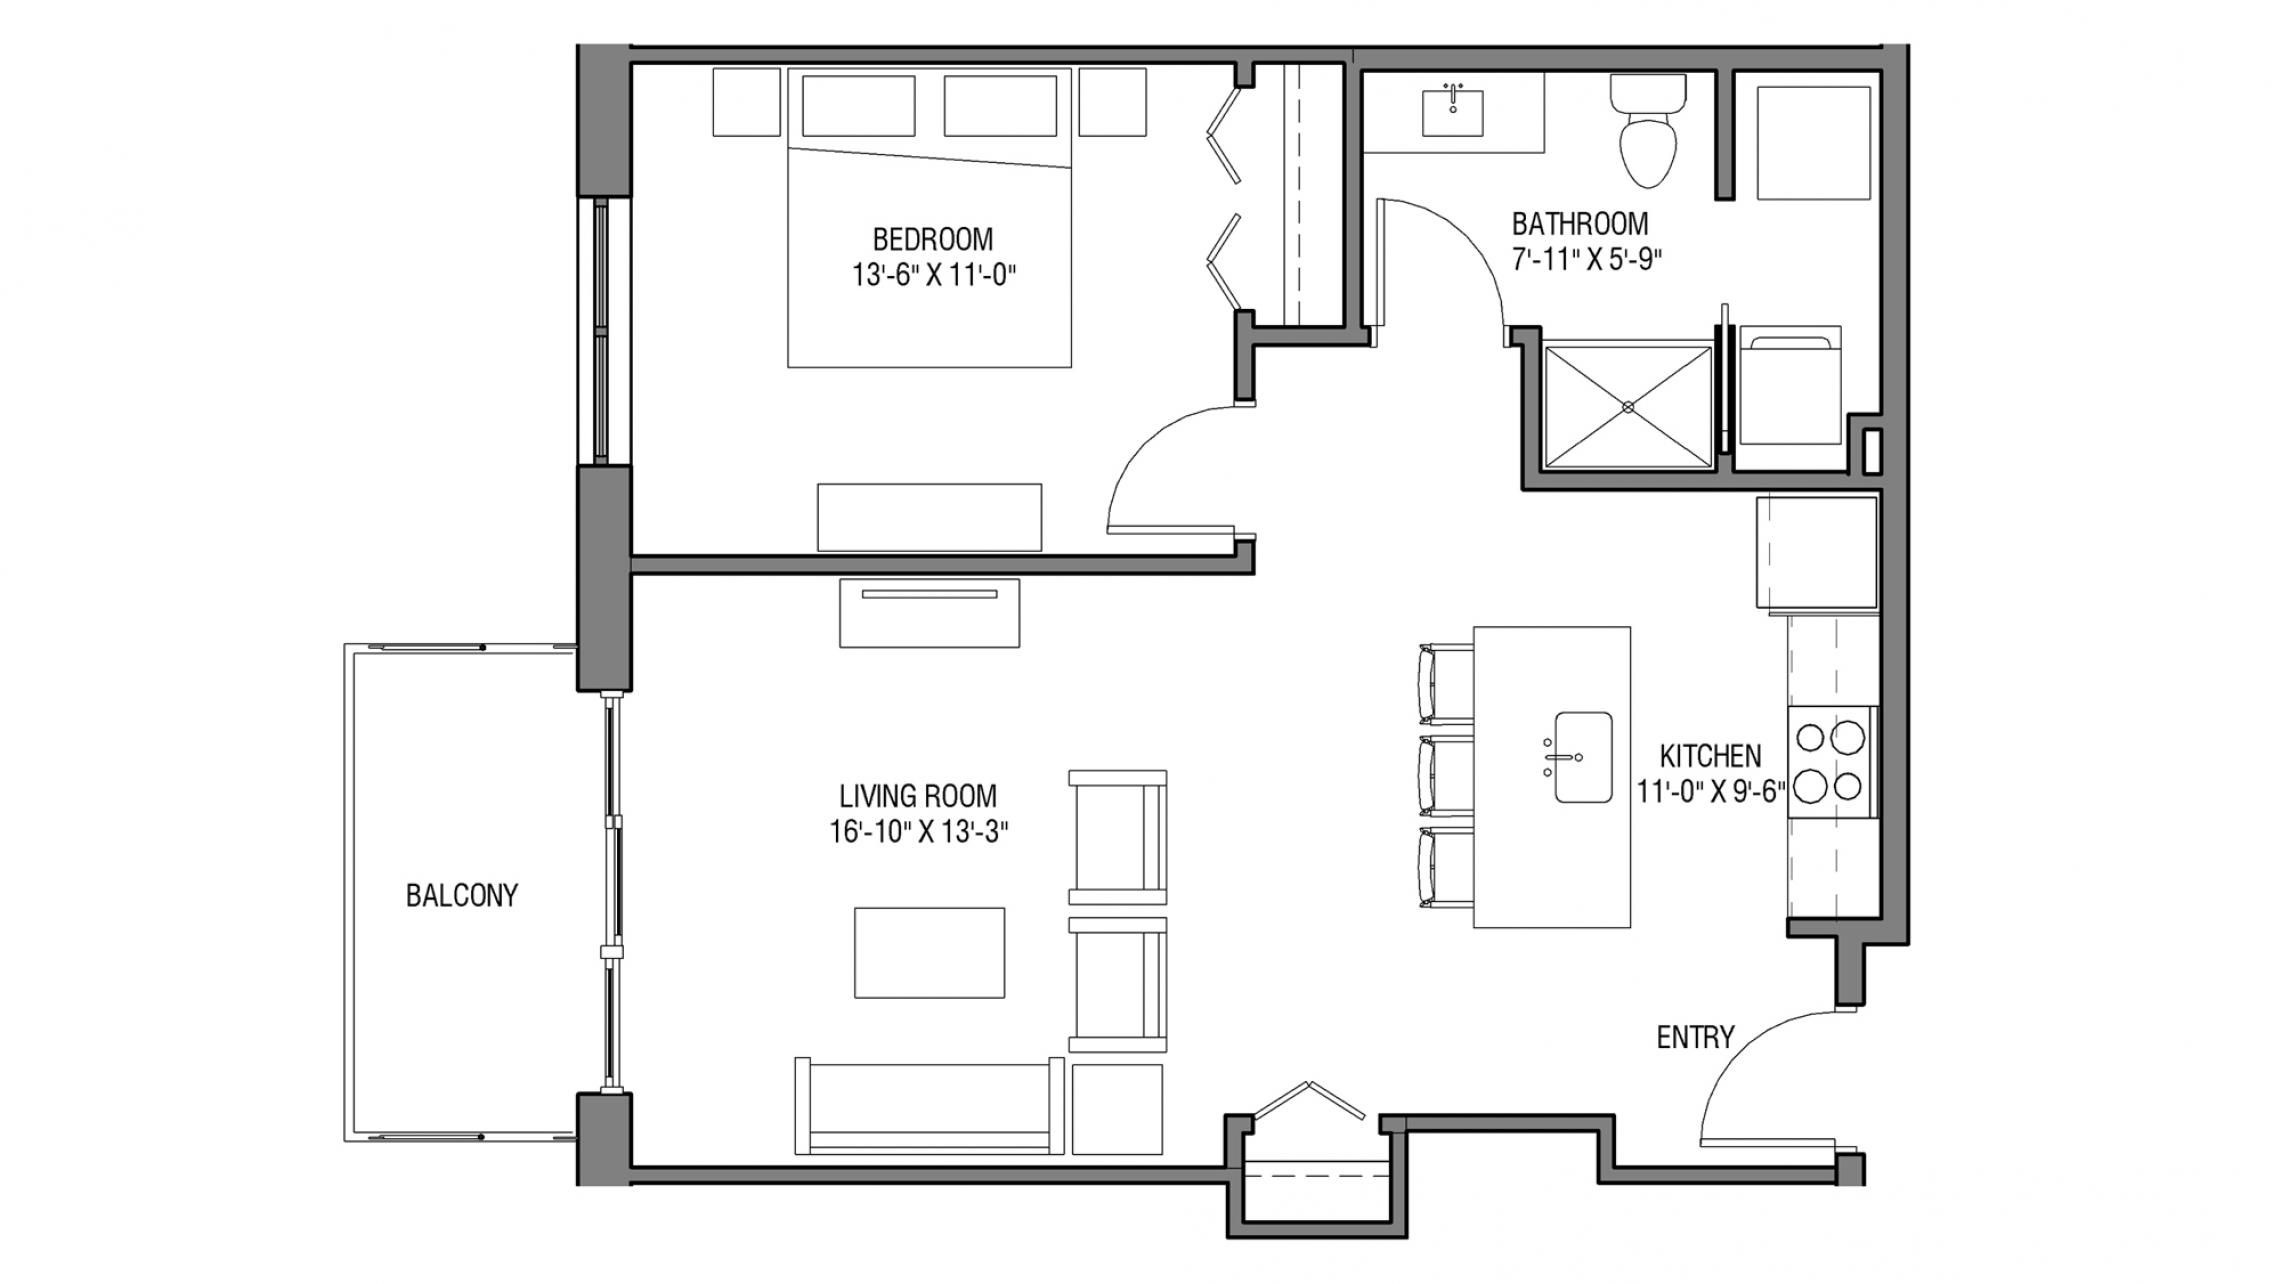 ULI Nine Line 520 - One Bedroom, One Bathroom